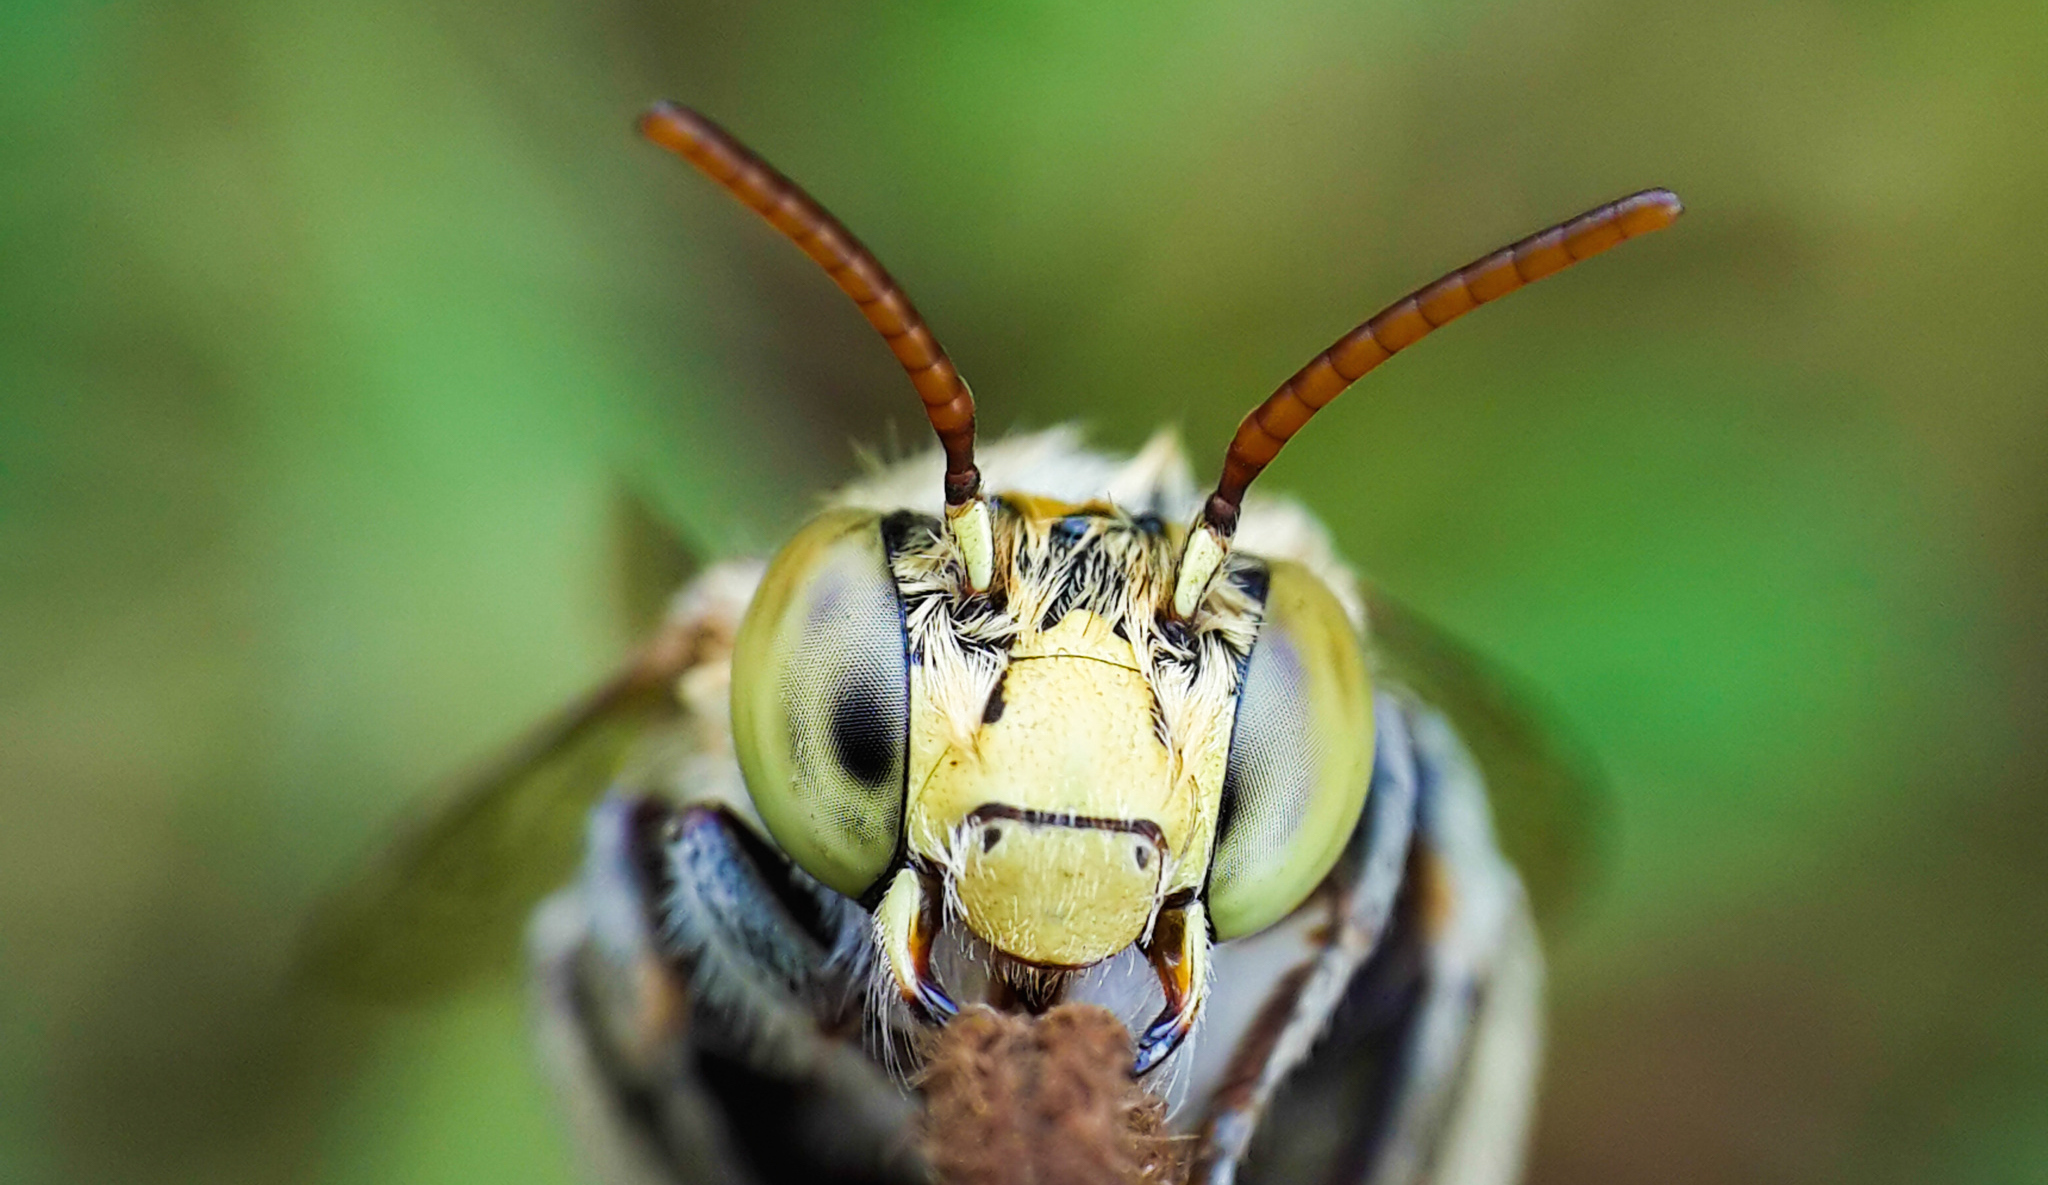 Incredible Macro Photos Taken with a Smartphone & DIY Lens